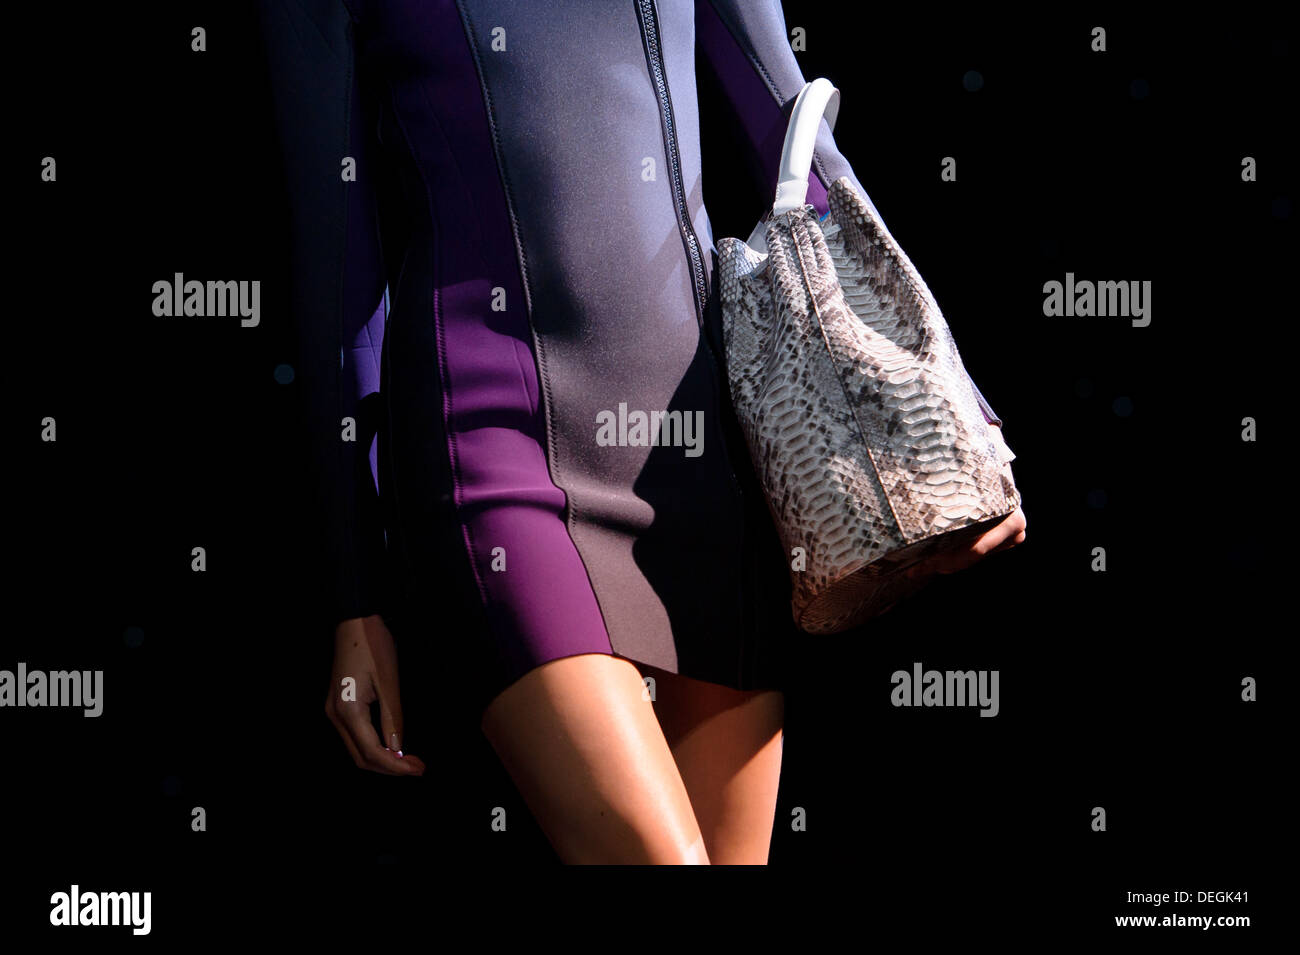 A model wears an accessory created by Anya Hindmarch during London Fashion Week Spring/Summer 2014. - Stock Image